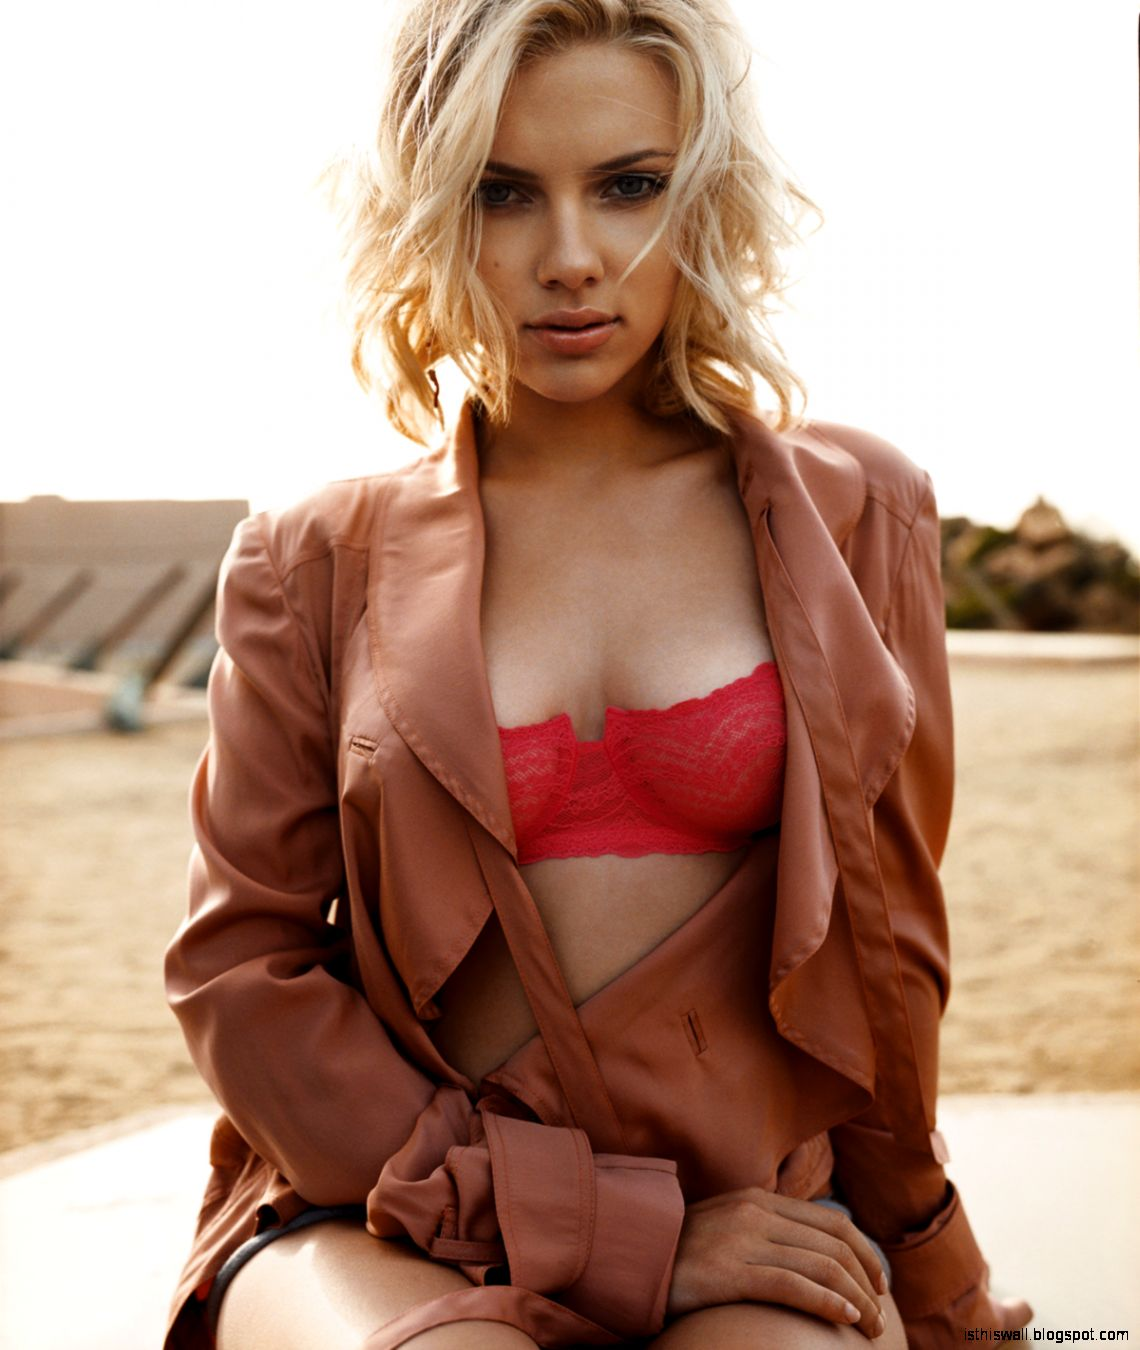 Scarlett Johansson 2013 iest Woman Alive Photos and Video